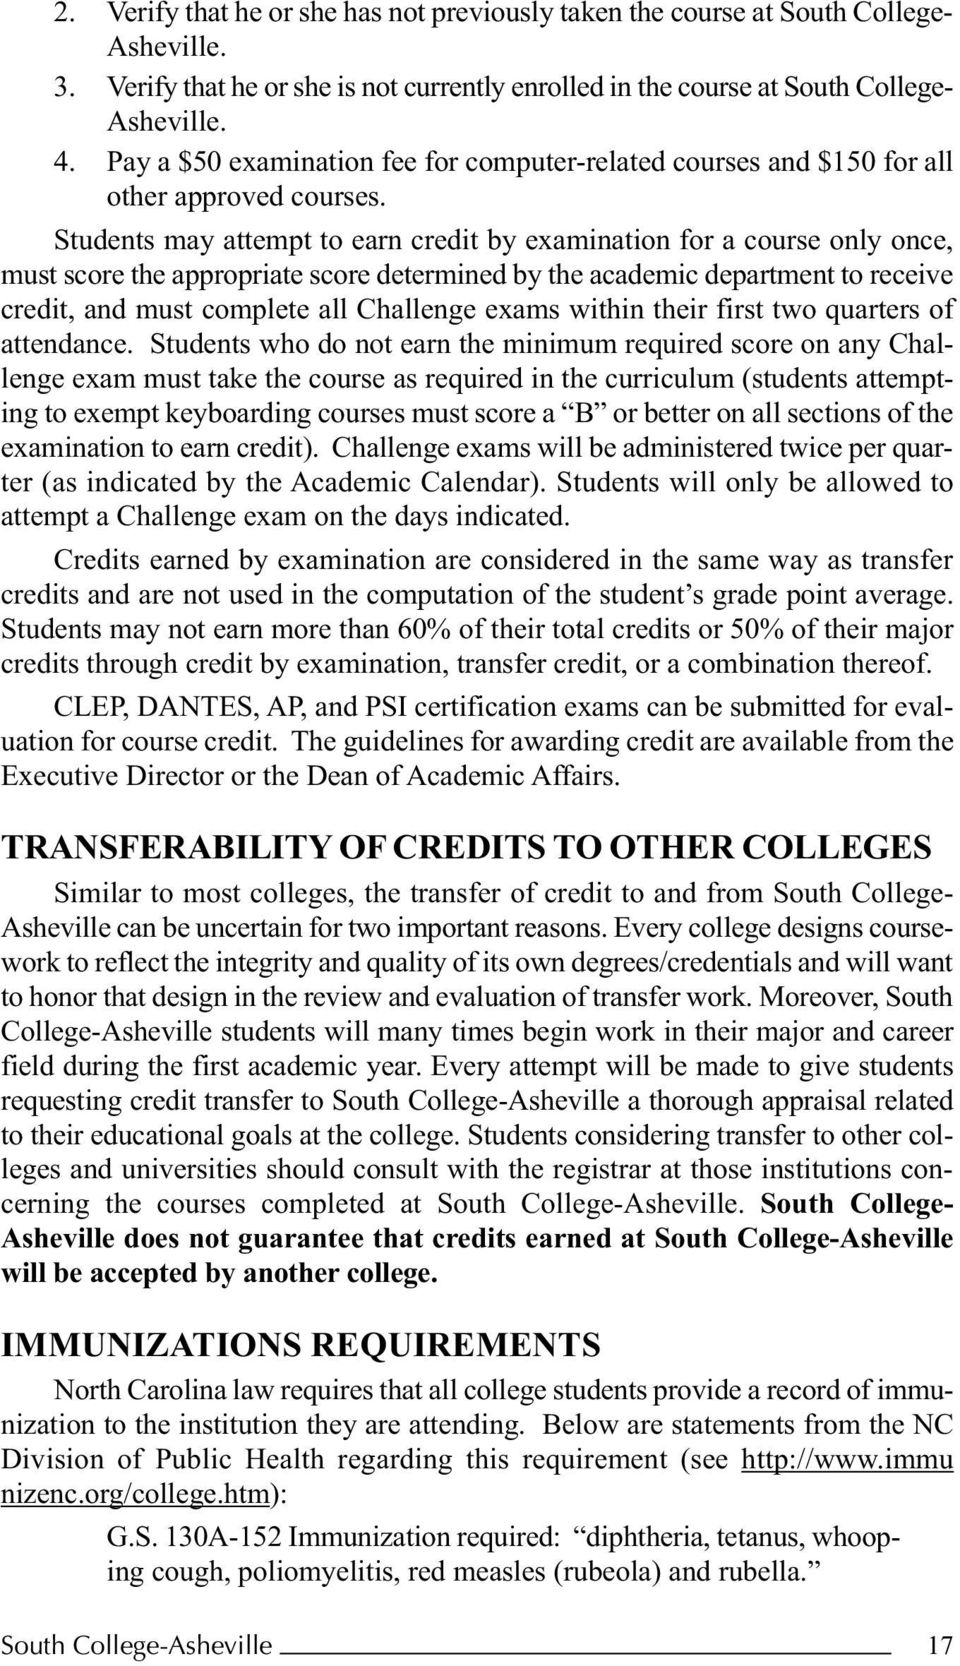 Students may attempt to earn credit by examination for a course only once, must score the appropriate score determined by the academic department to receive credit, and must complete all Challenge